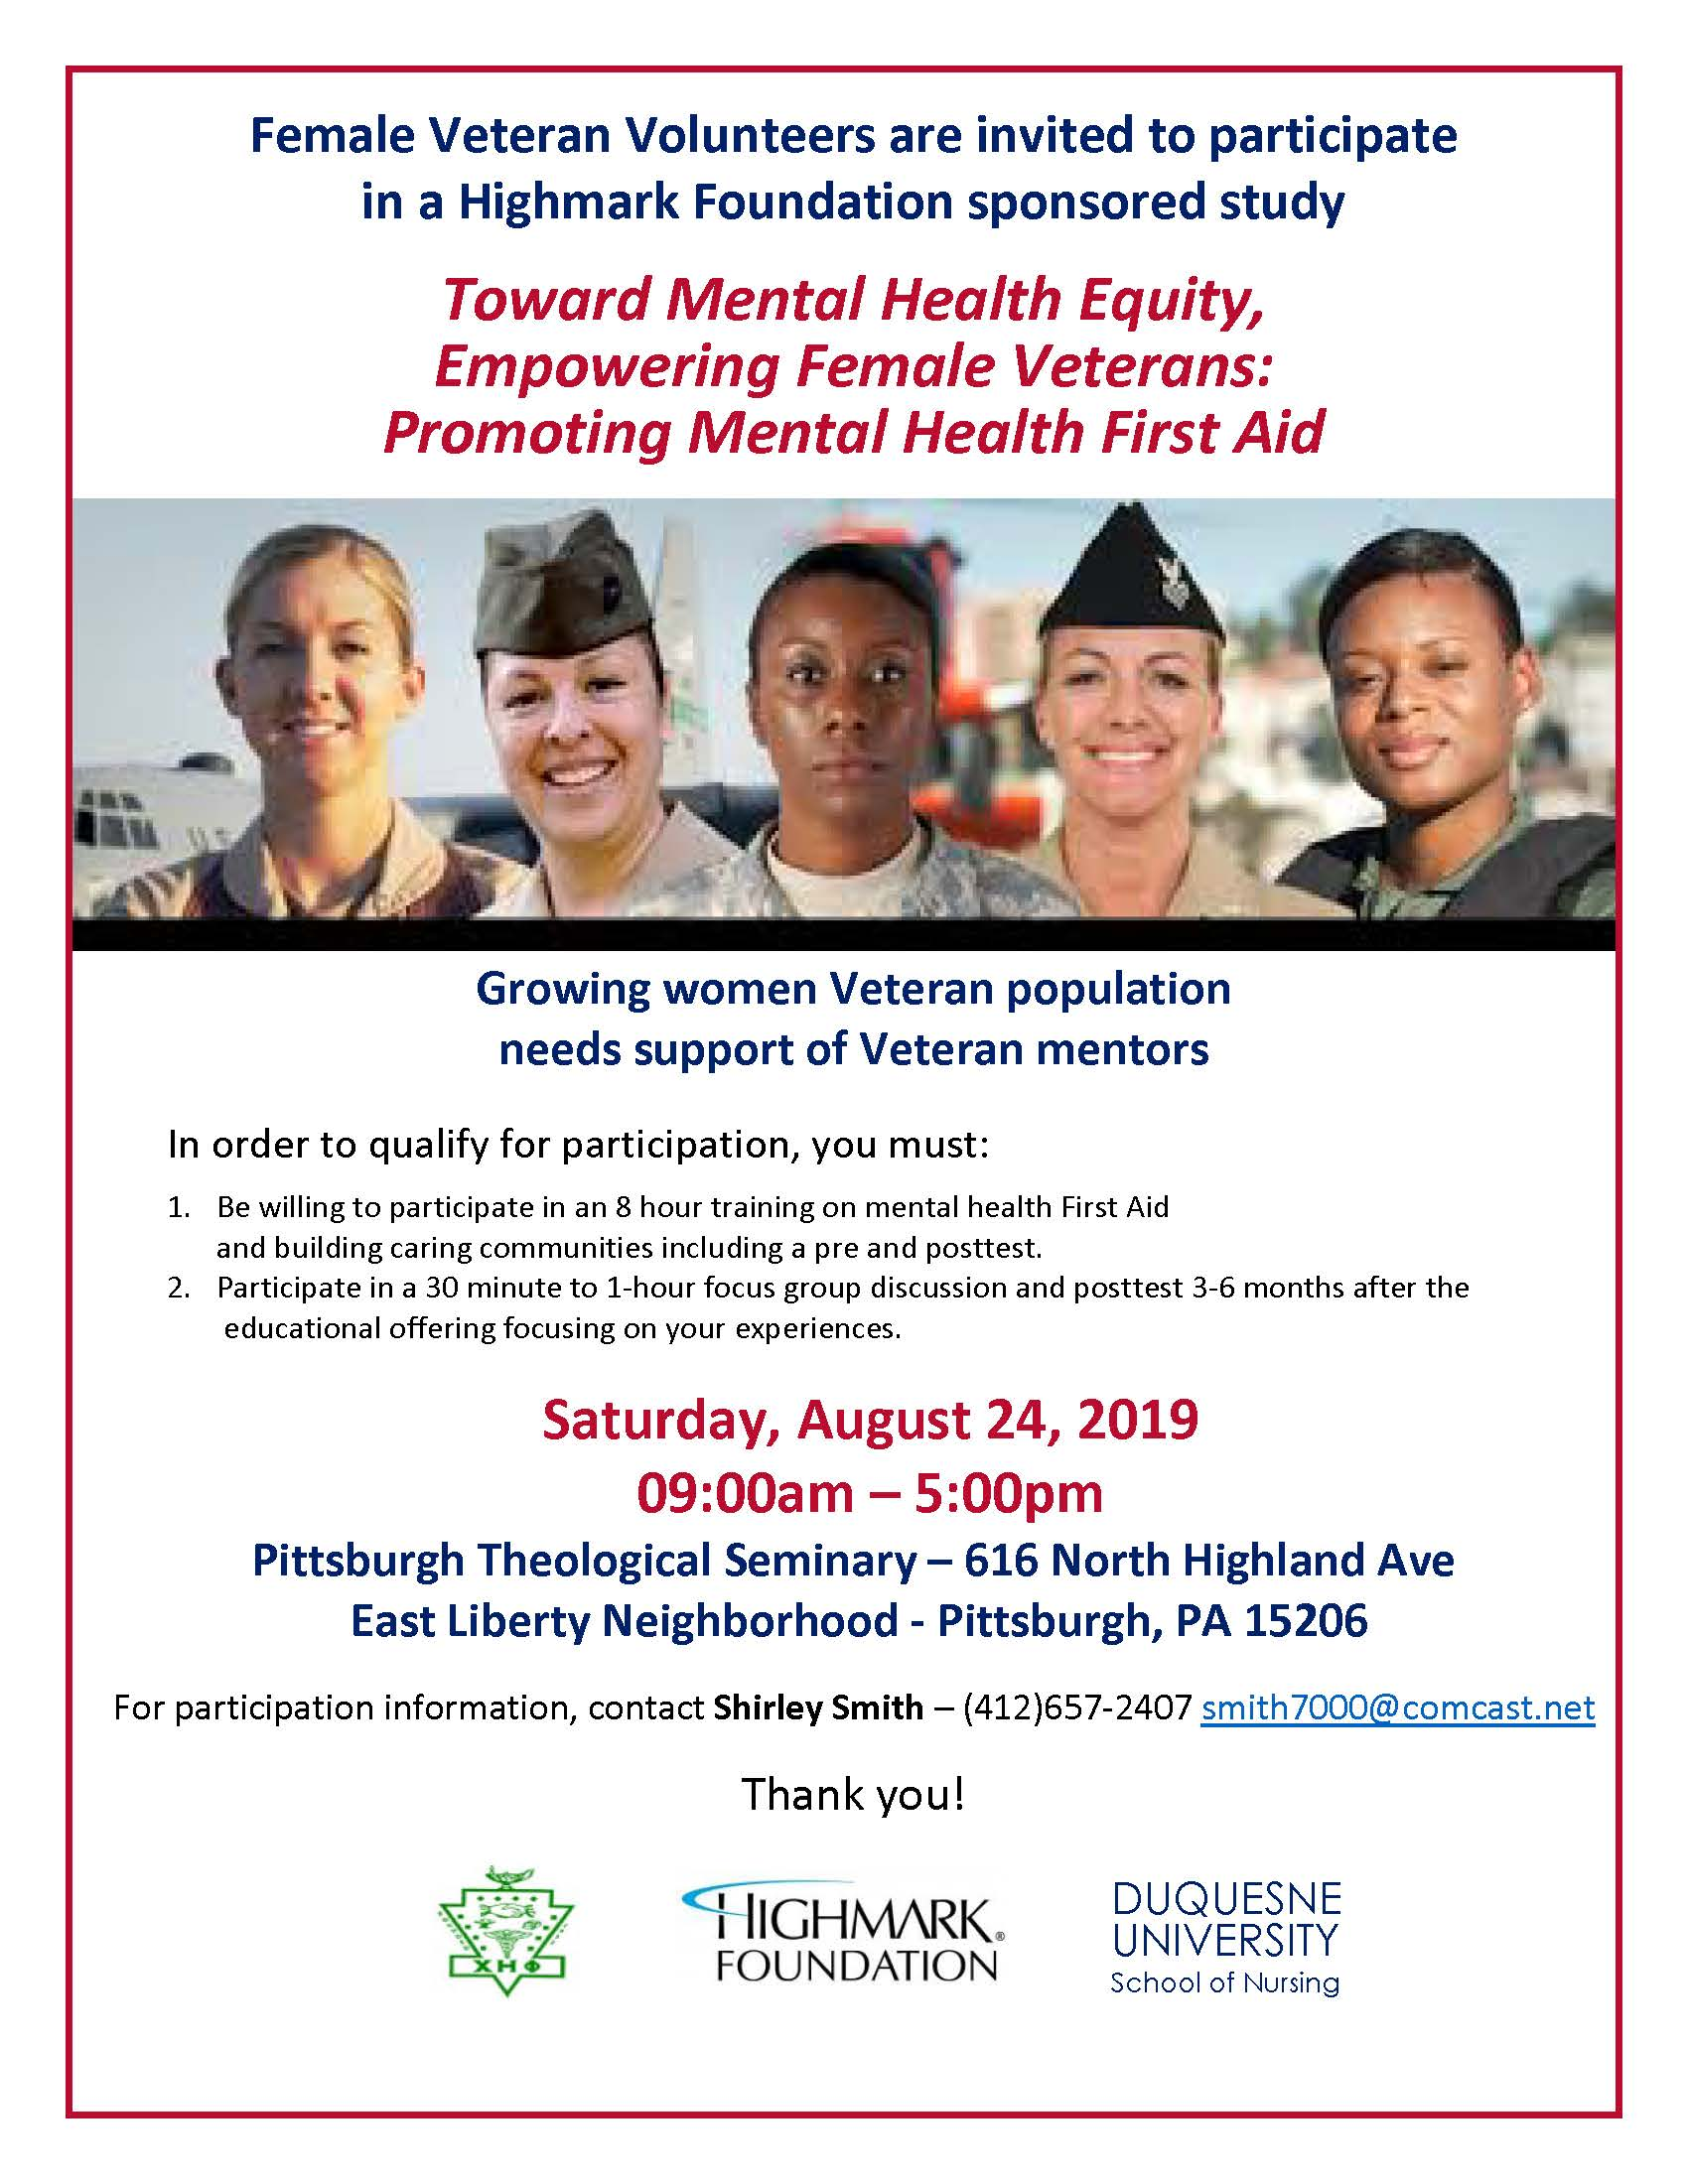 Female Veteran Research Opportunity flier for promoting mental health first aid